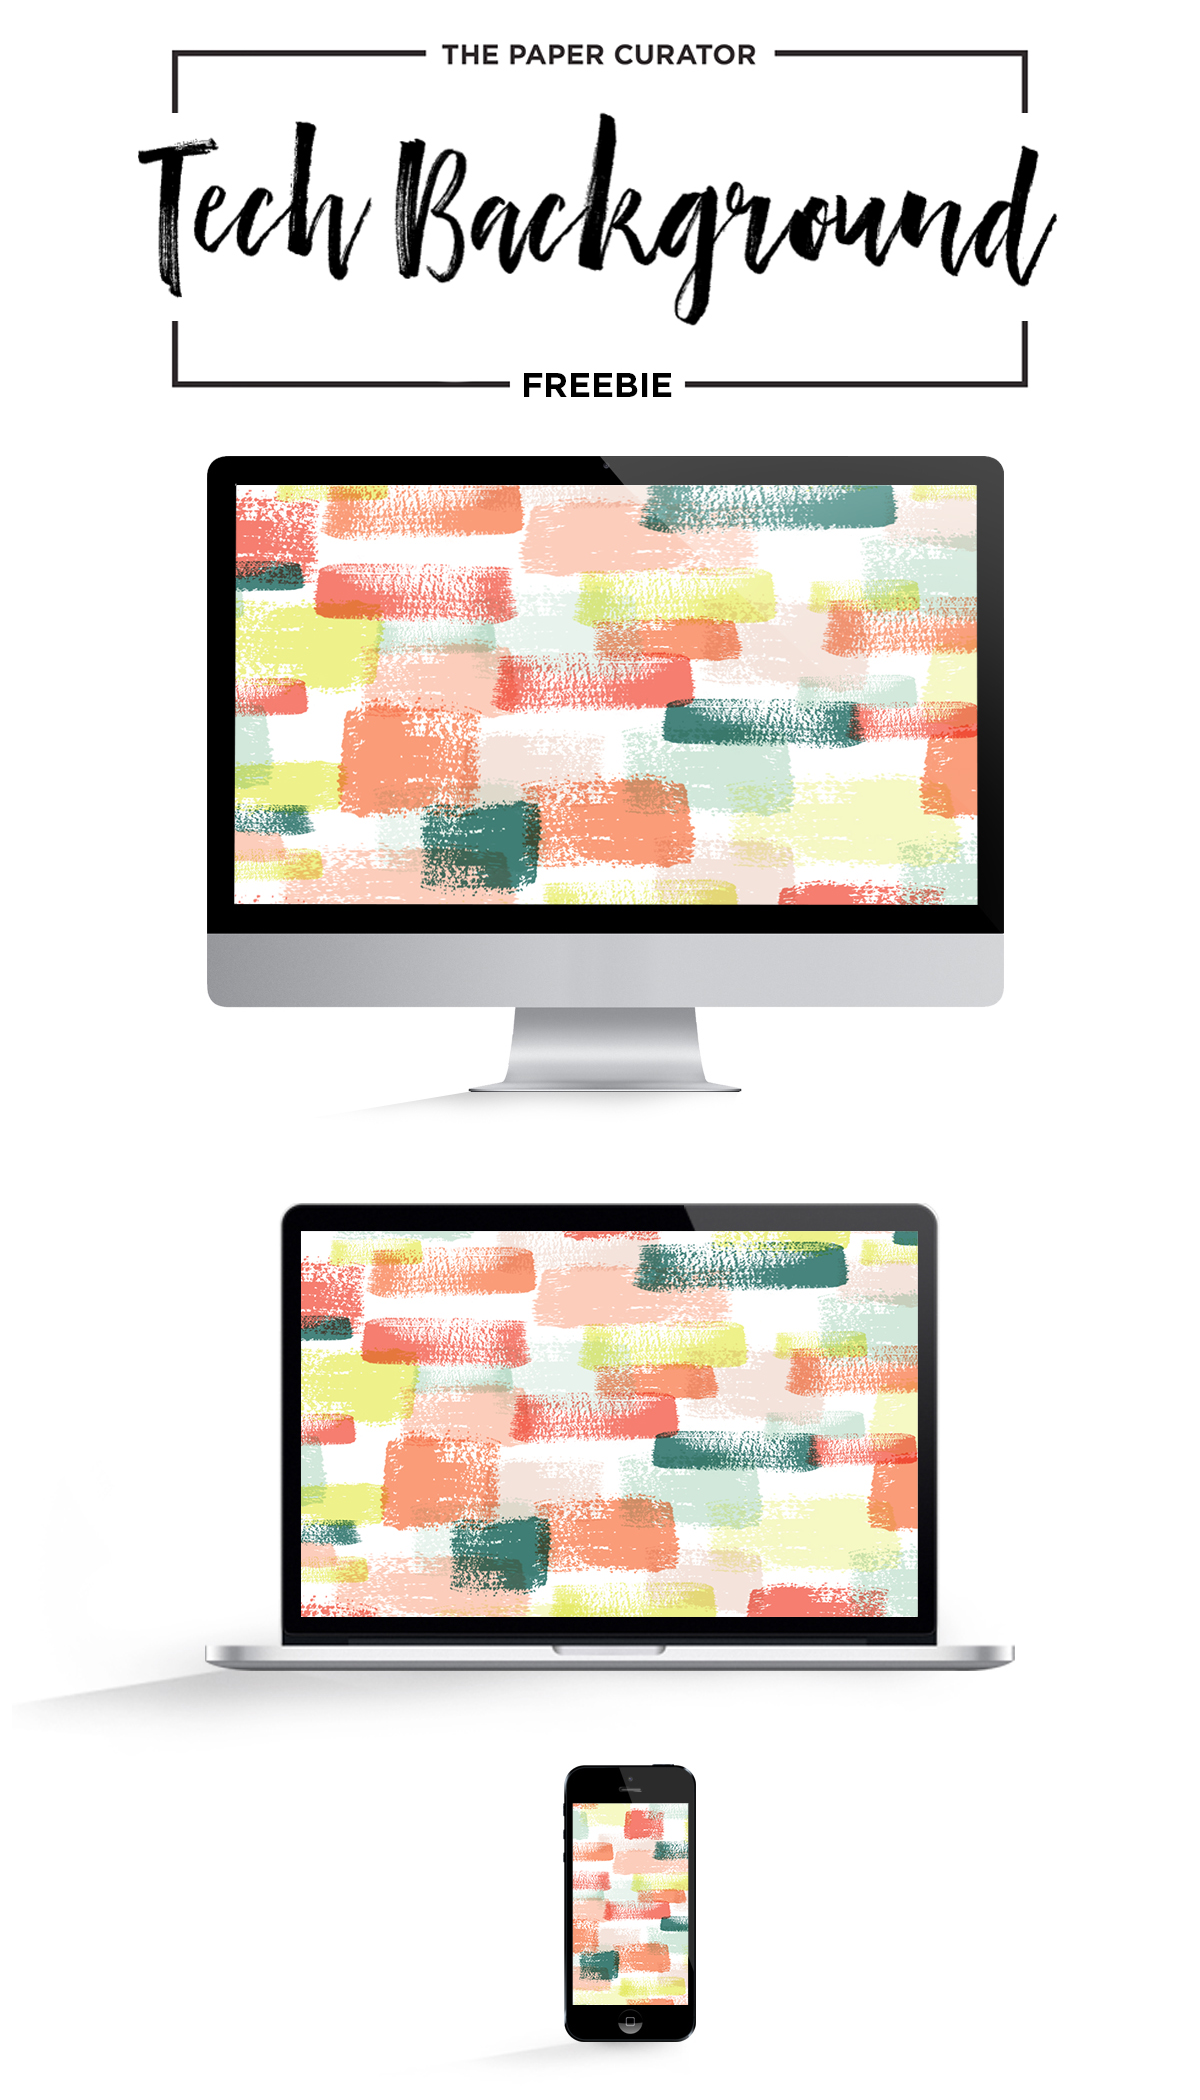 February Freebie Tech Backgrounds   The Paper Curator